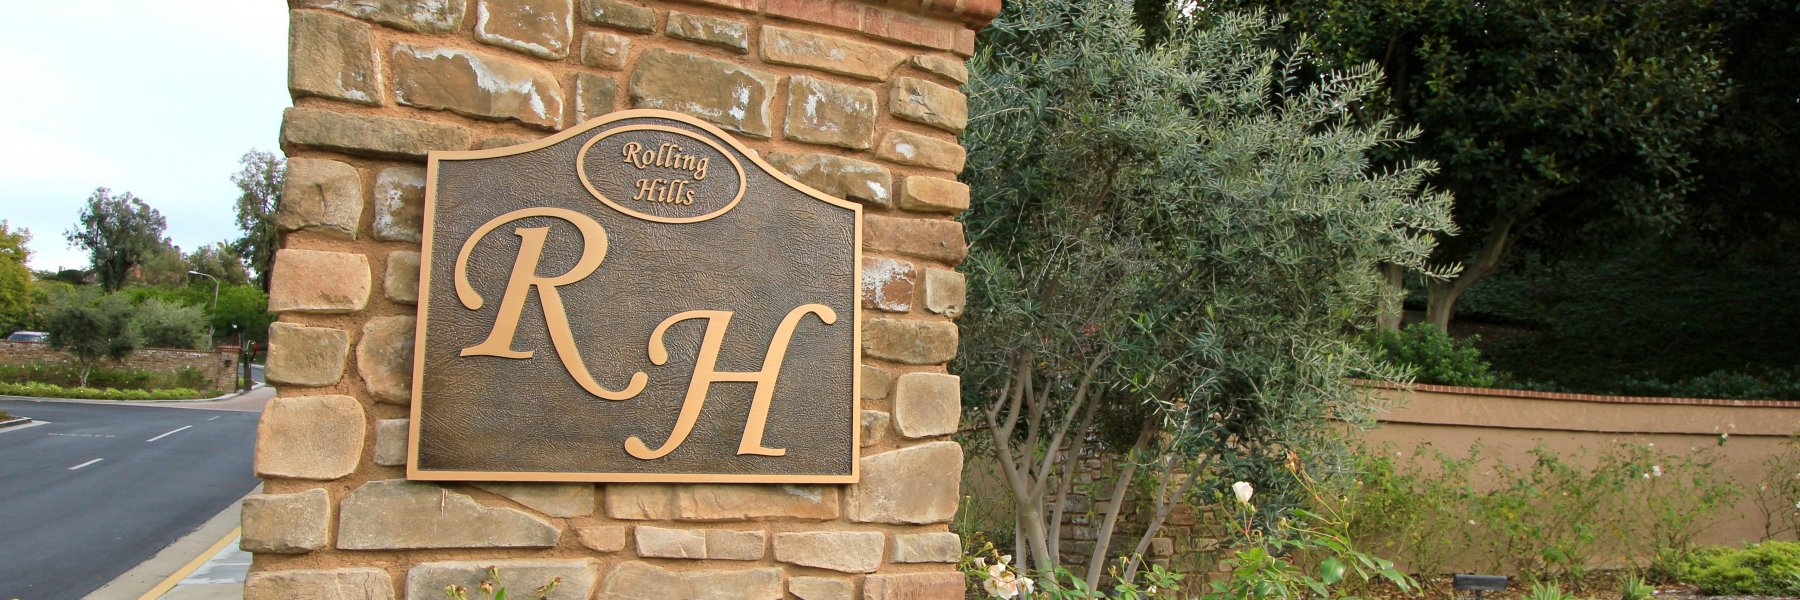 Rolling Hills is a neighborhood of homes located in Laguna Niguel California